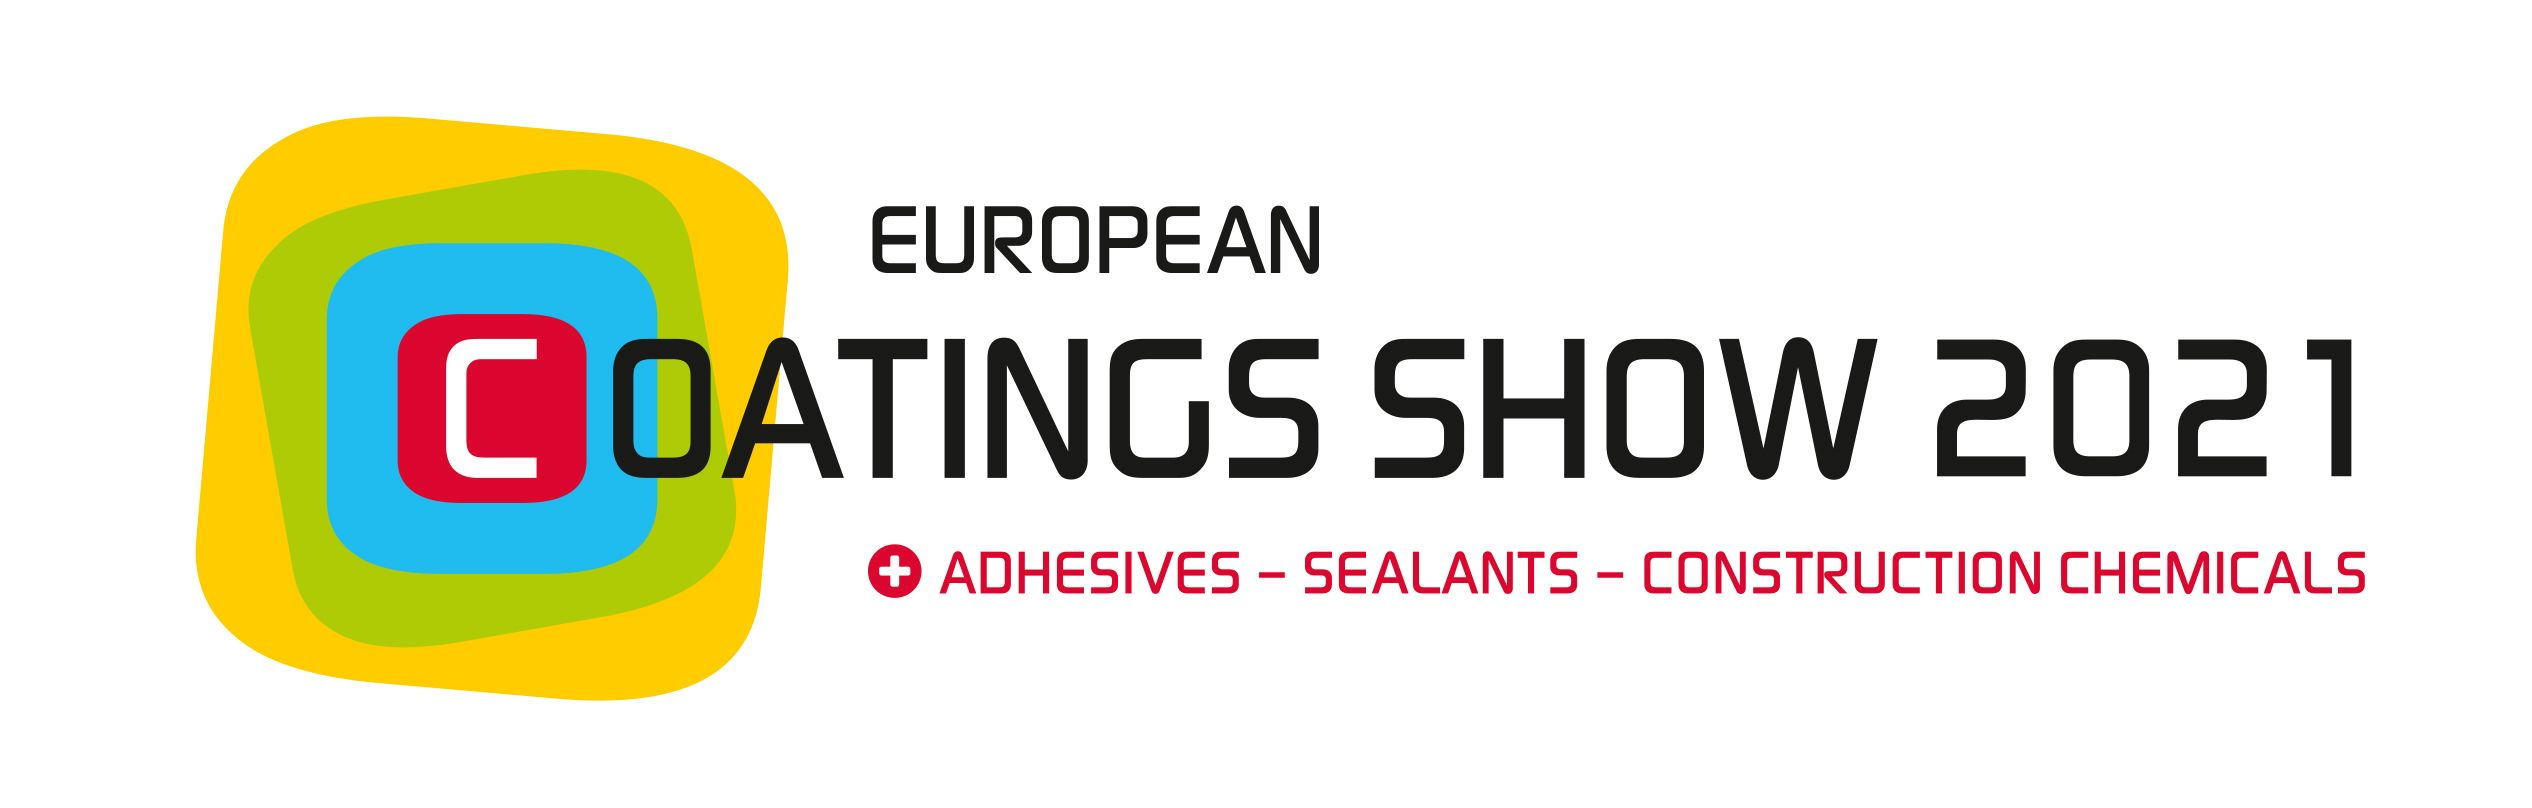 The European Coatings Show (ECS) has been postponed to 14 – 16 September 2021 with the partly overlapping European Coatings Conference scheduled from 13 – 14 September 2021. (Source: Vincentz Network)